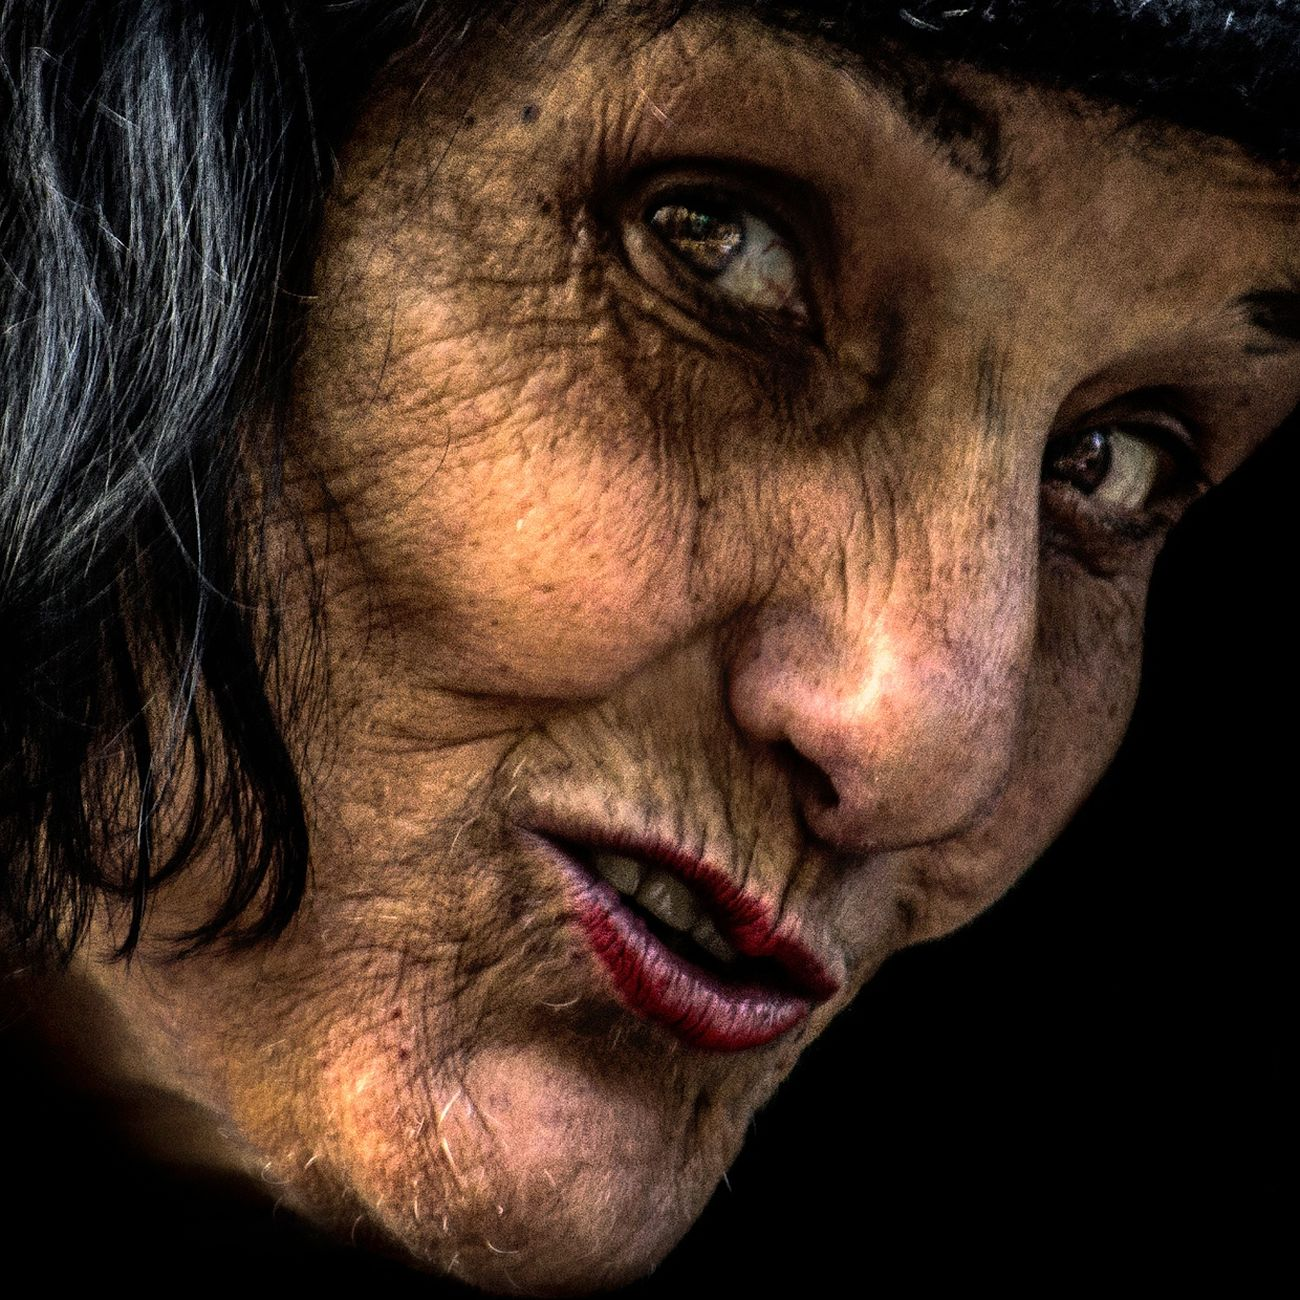 Anonymous portrait... Human Face One Person Real People Portrait RePicture Ageing Streetphotography People Touching Arts Culture And Entertainment Beauty Wrinkled Exhibition Exhibit Art Photographic Photograph Photographer Gallery Visitor Watchers Watch See Look Looking Private Public Blurred Blur Out Of Focus Photography Documentary Reportage Street The Human Condition Contemplation Street Portrait Human Lips Human Representation Mature Adult Adults Only EyeEm Best Shots Pain Human Skin Human Body Part Human Hand One Woman Only